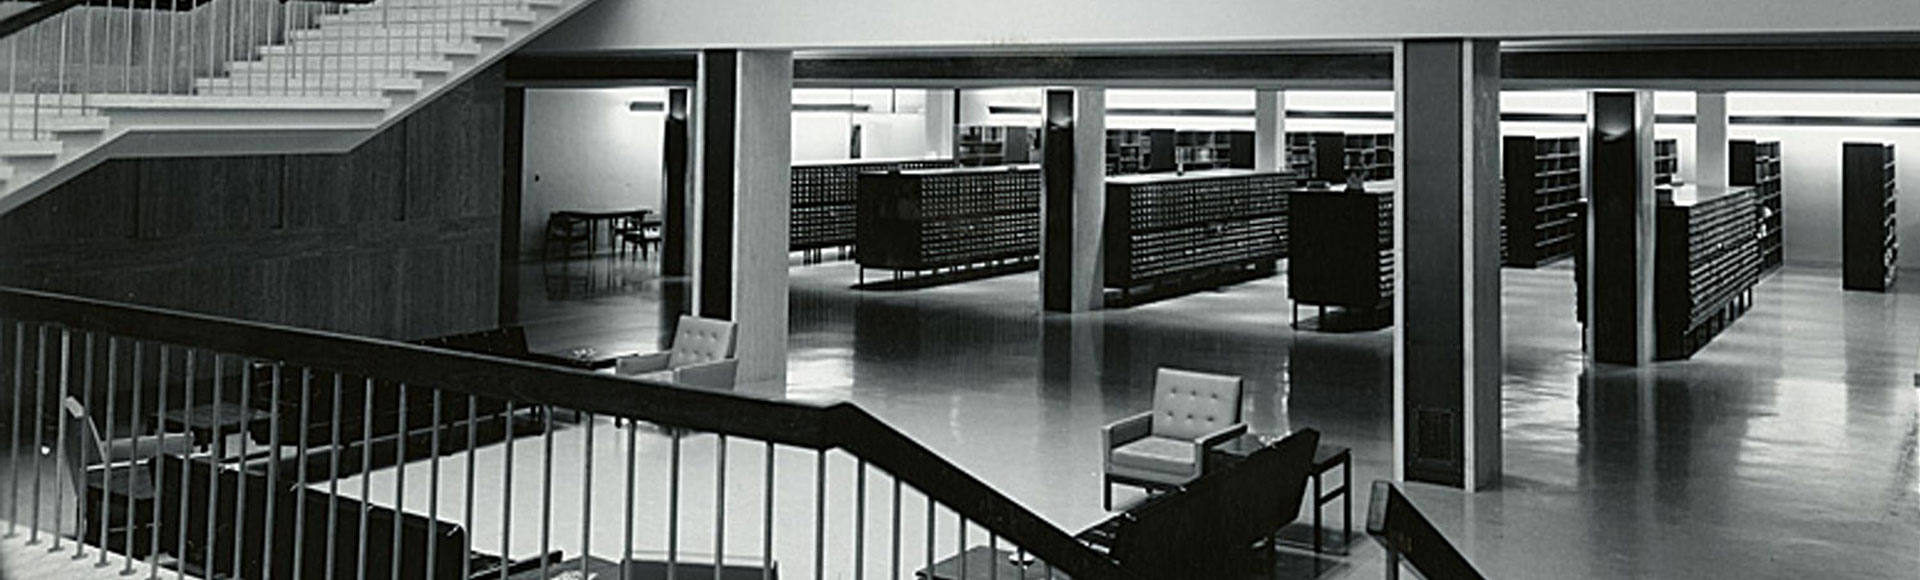 MILTON S. EISENHOWER LIBRARY, THE JOHNS HOPKINS UNIVERSITY